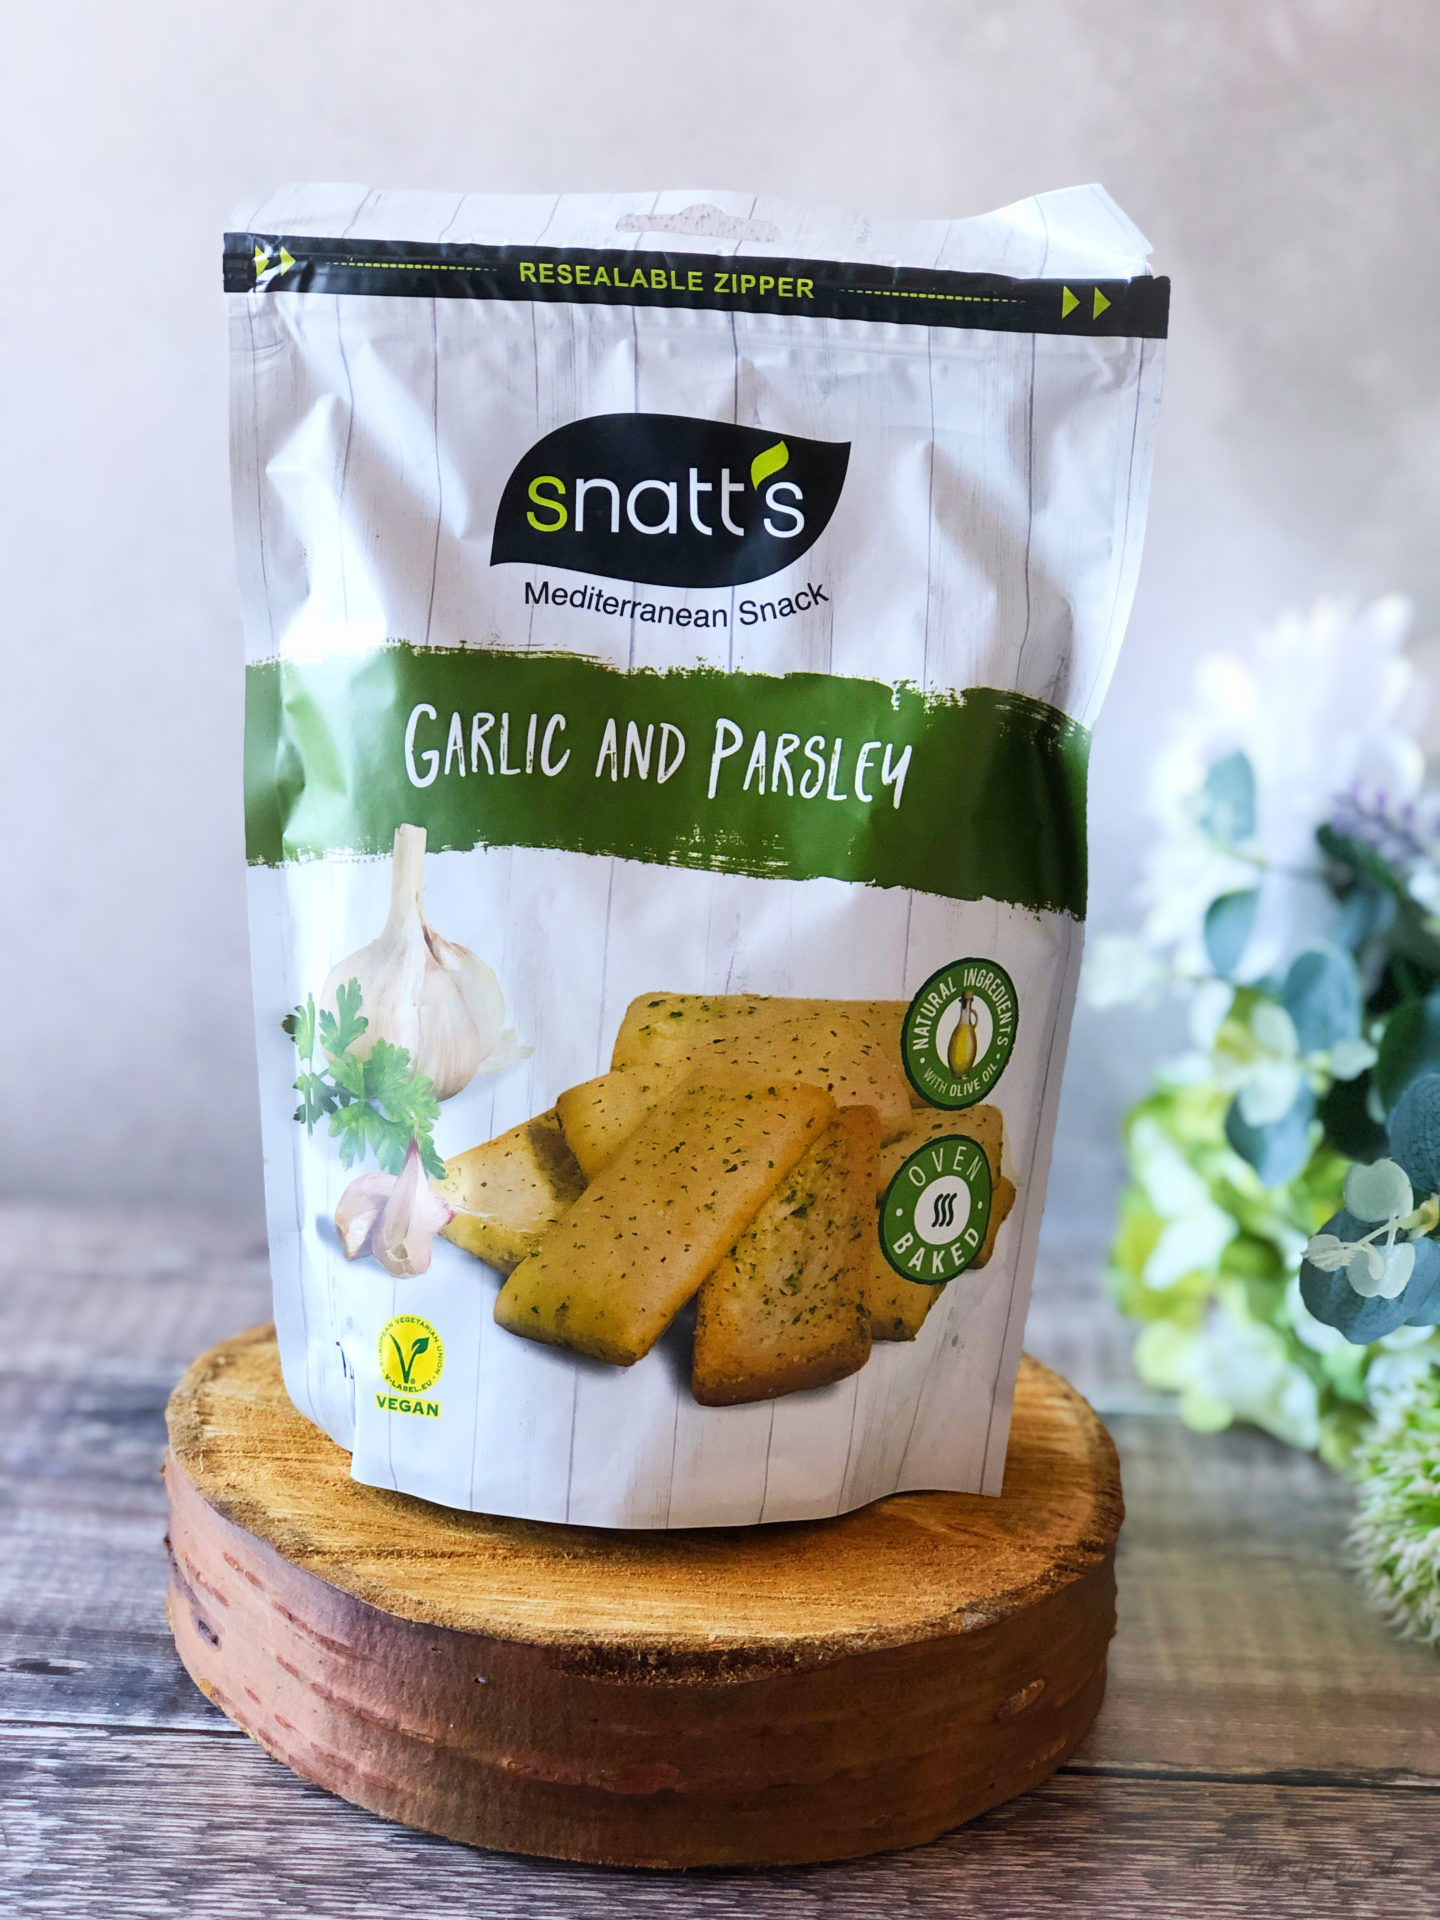 Snatt's Garlic & Parsley Mediterranean Baked Snacks - October 2019 Degusta Box